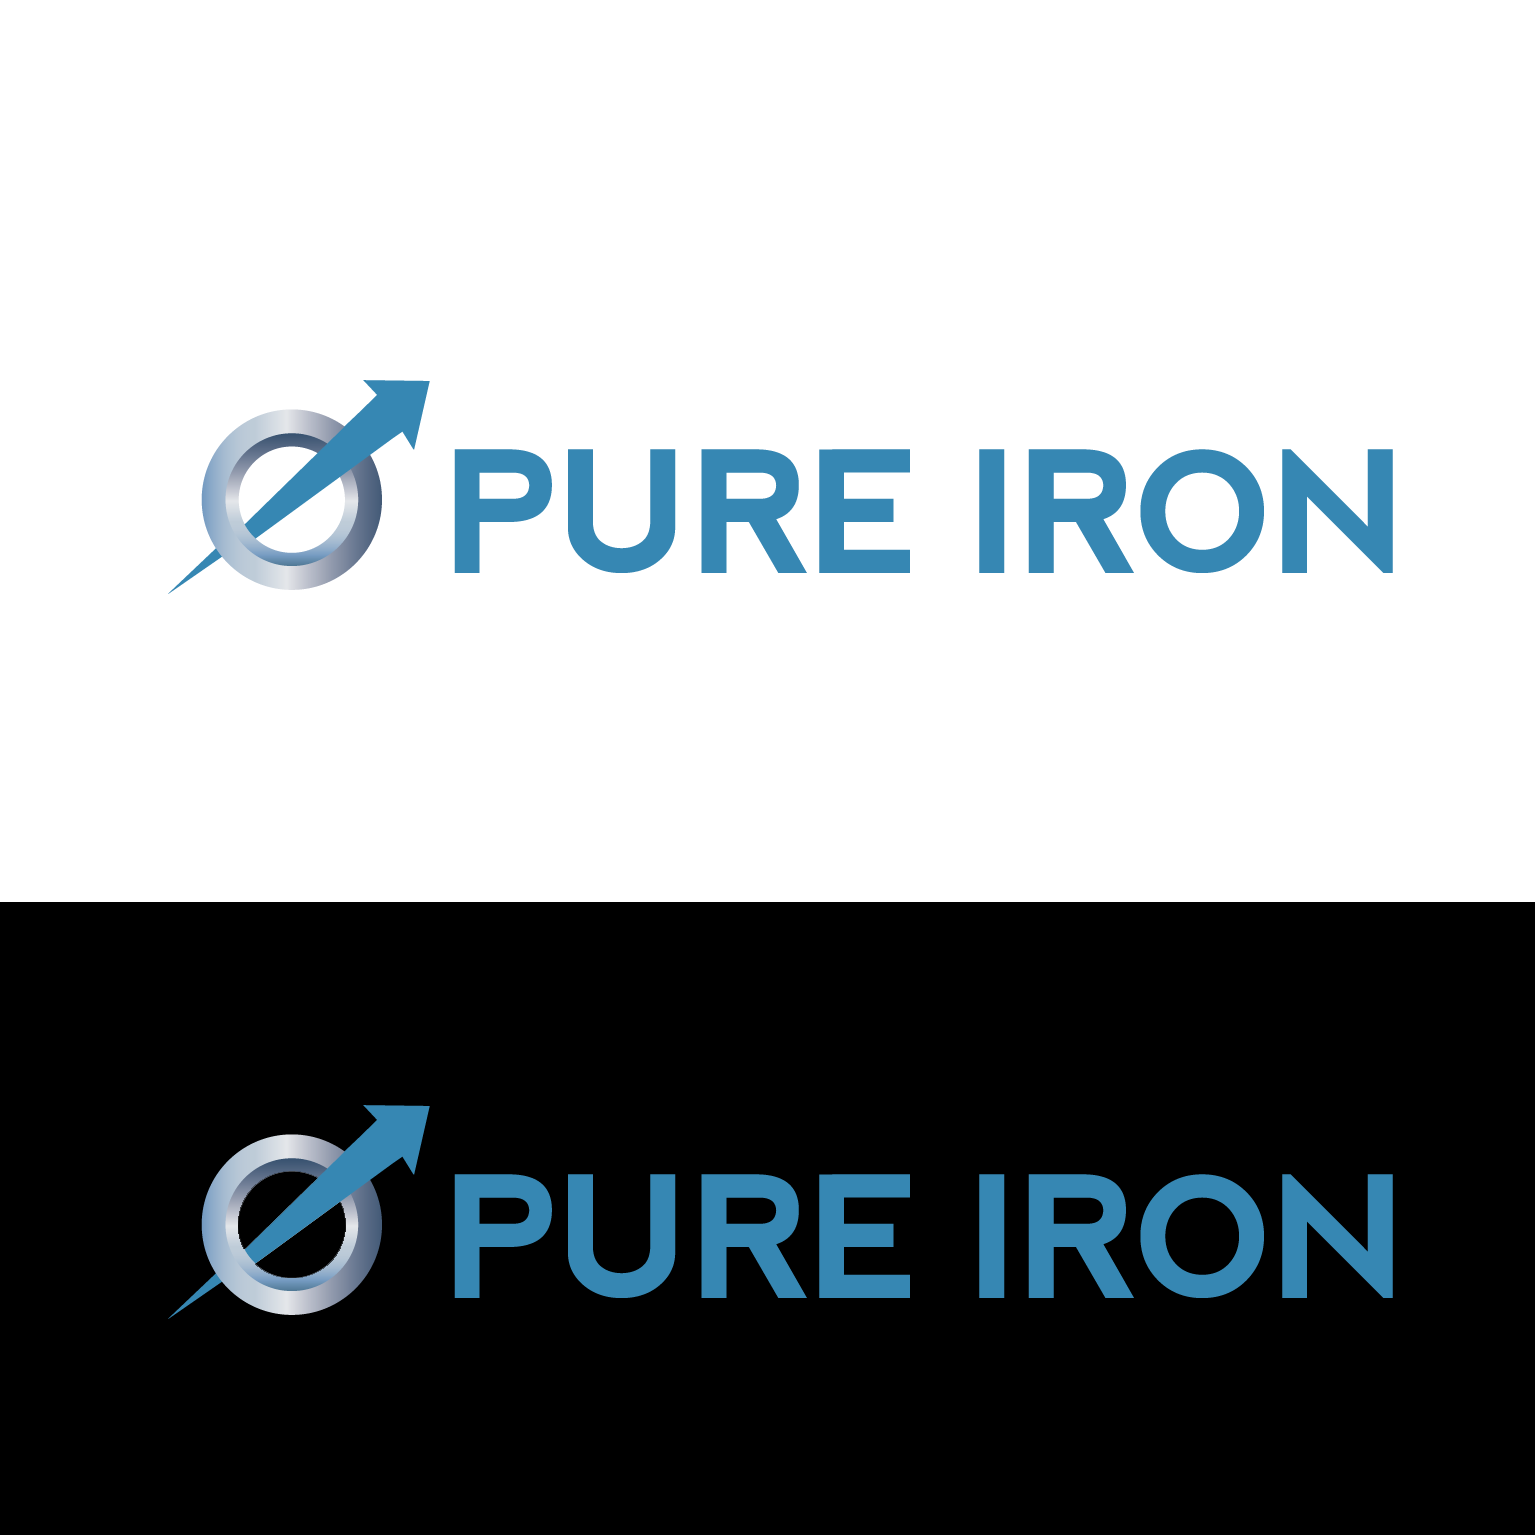 Logo Design by luna - Entry No. 43 in the Logo Design Contest Fun Logo Design for Pure Iron.